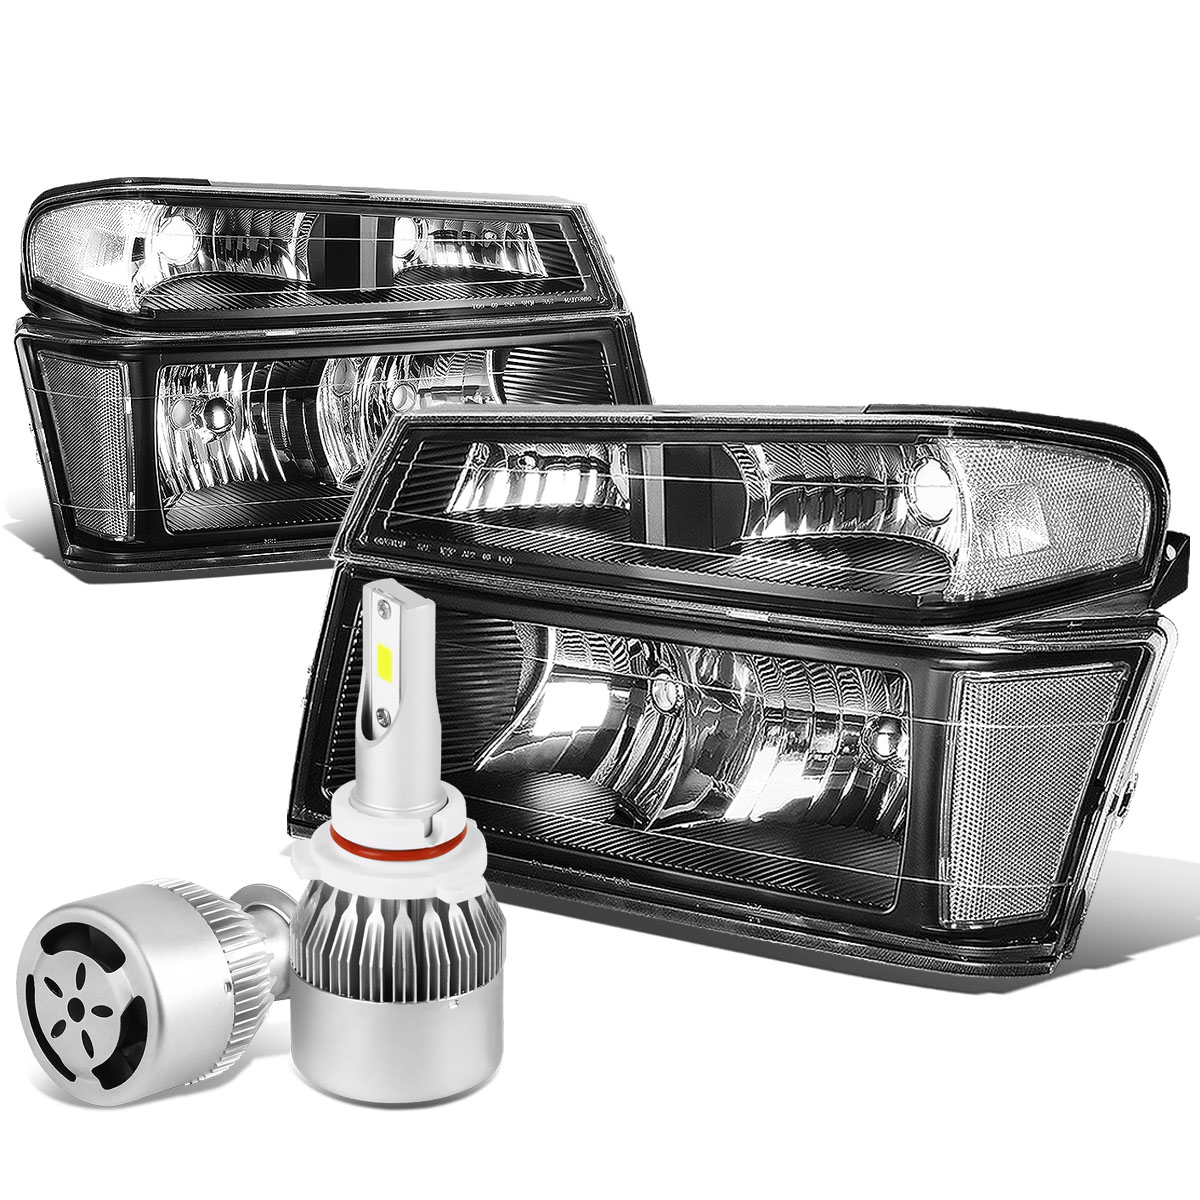 04 12 chevy colorado gmc canyon pair of headlight bumper light black housing clear reflector 6000k white led w fan 4 04 12 chevy colorado gmc canyon pair of headlight & bumper light 2004 Silverado Tail Light Wiring Diagram at mr168.co